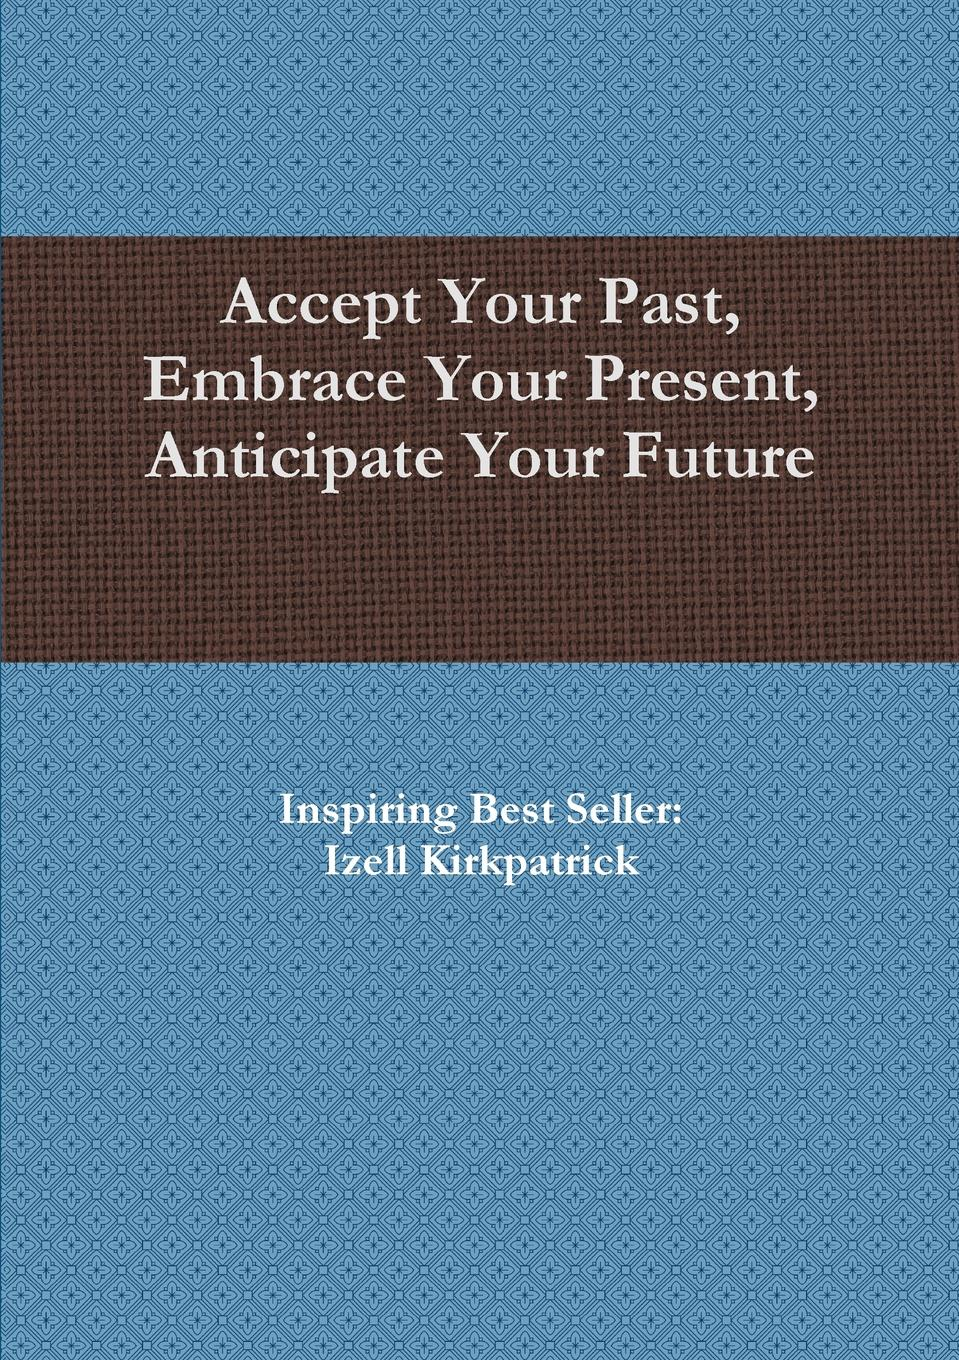 Accept Your Past, Embrace Your Present, Anticipate Your Future